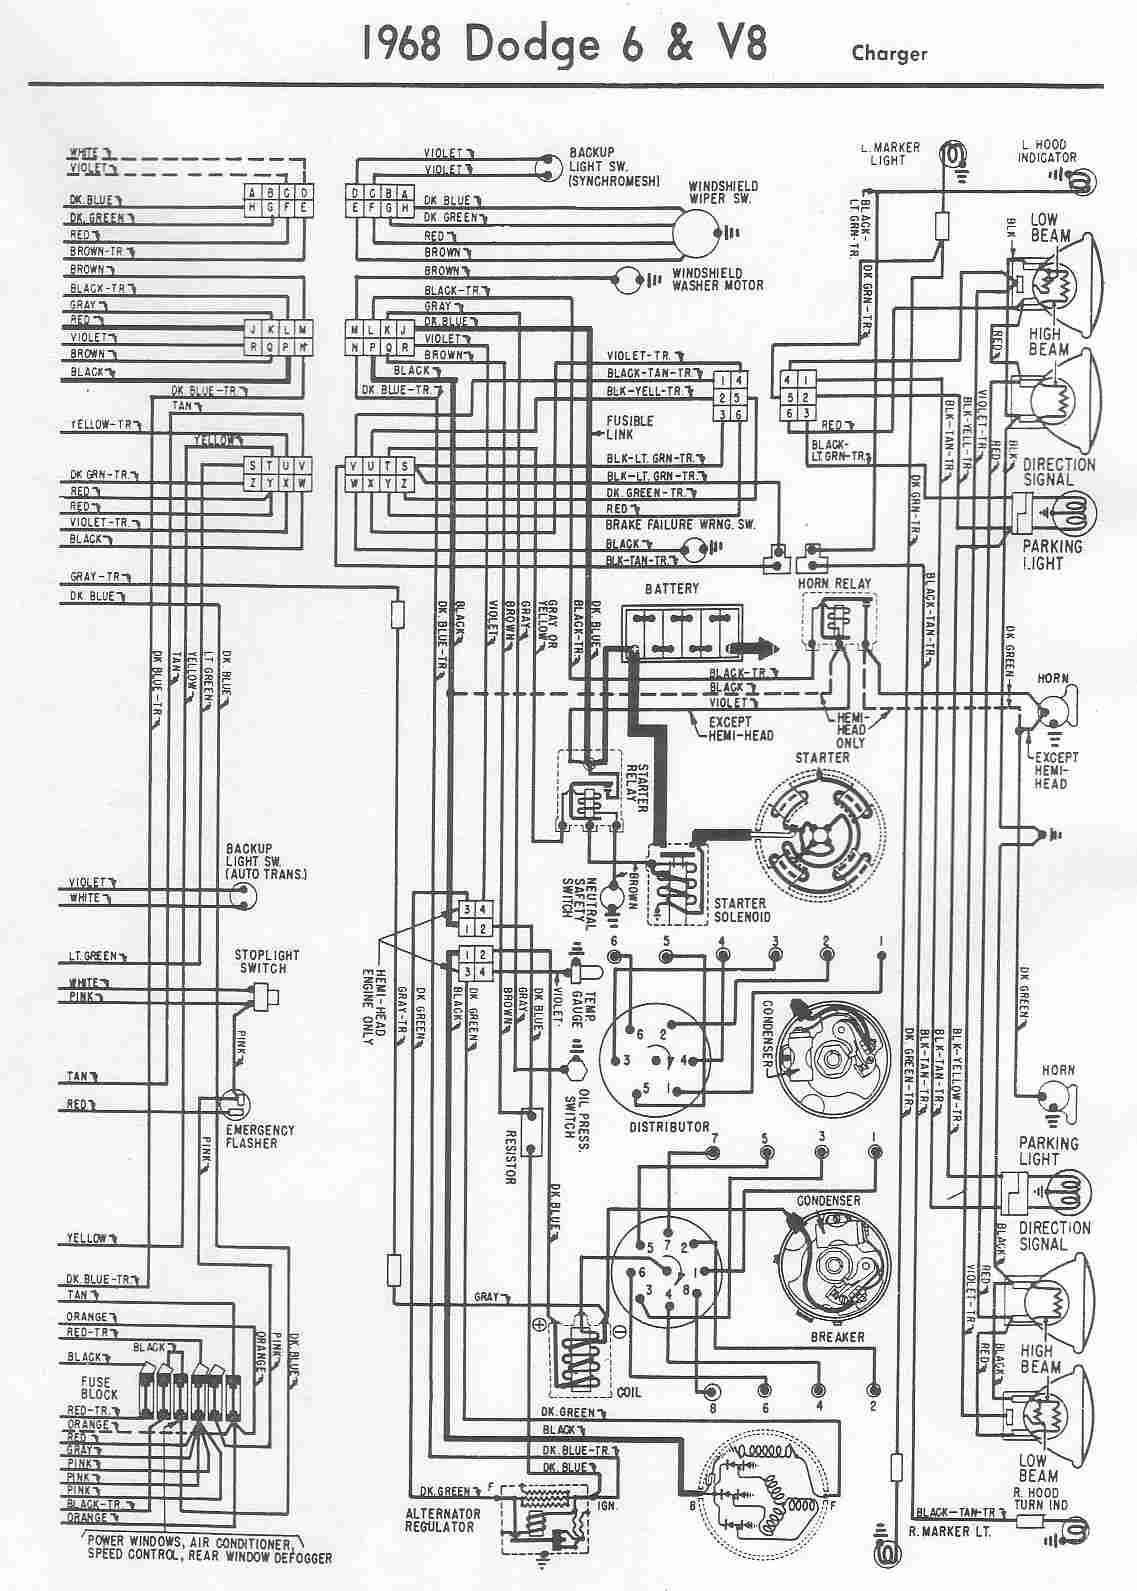 2008 Ducati 848 Wiring Diagram Guide And Troubleshooting Of Electrical Schematic U2022 Rh Asvahosting Com Chain